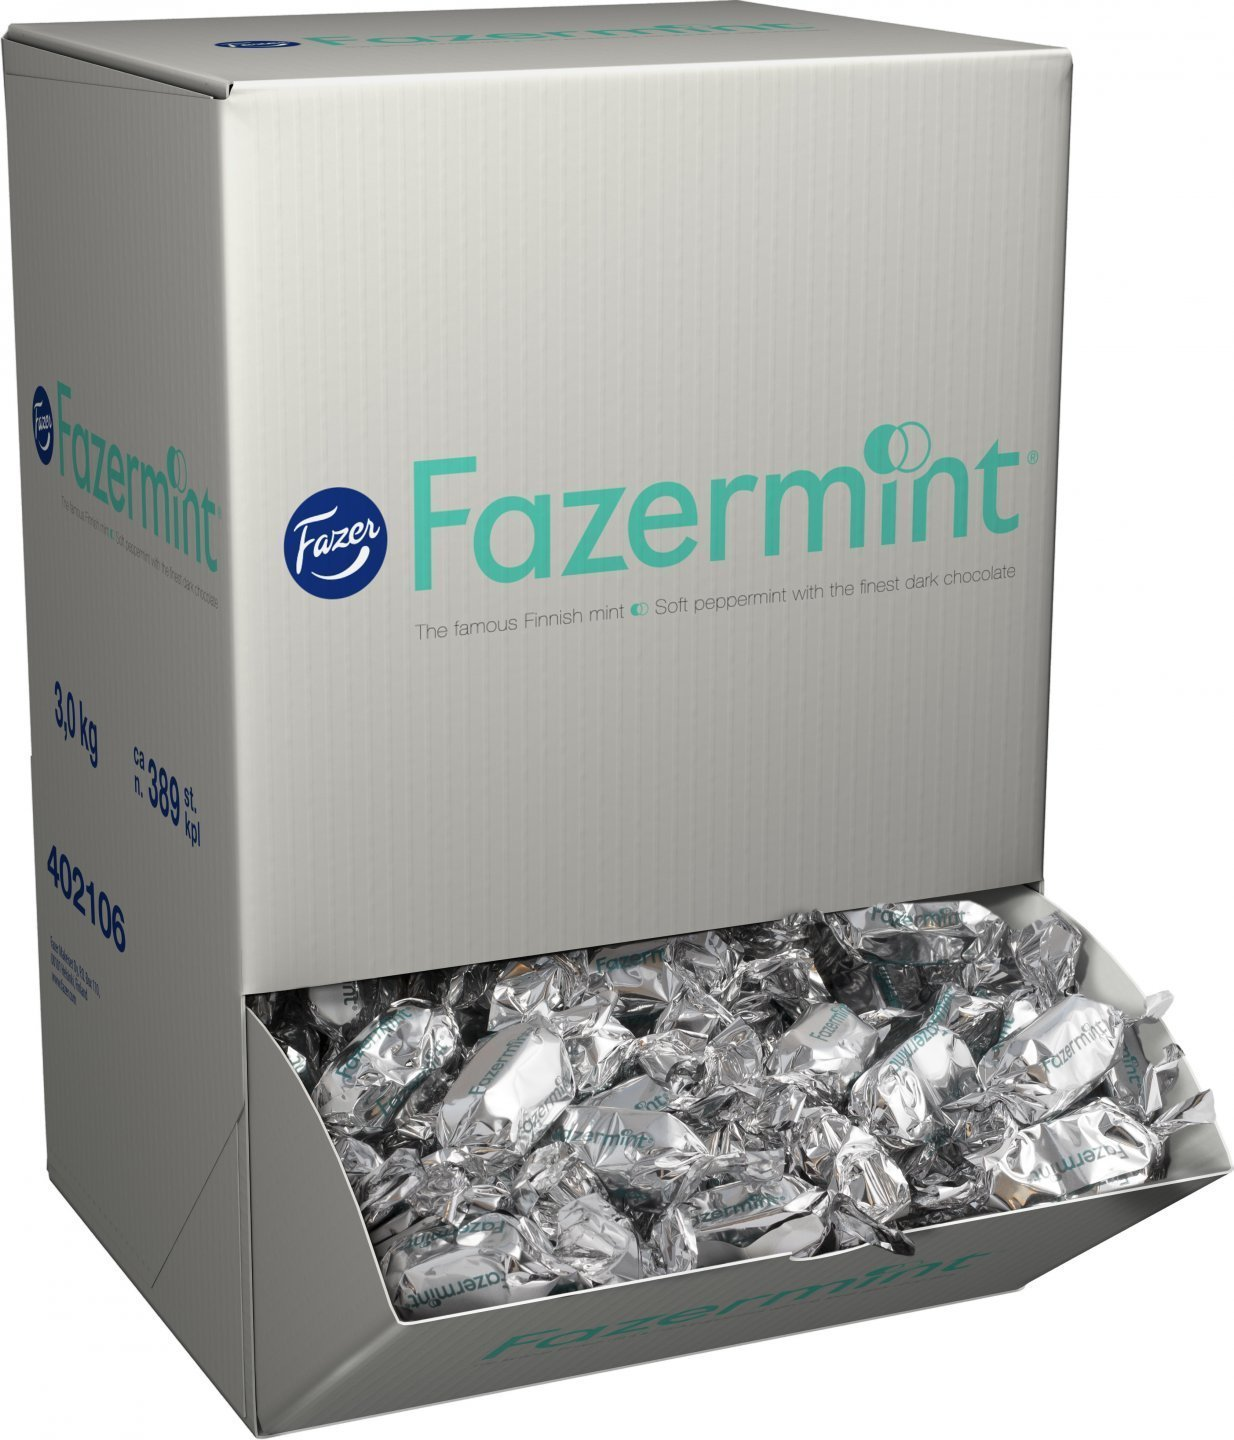 Fazer Fazermint - Original - Finnish - Creamy - Mint - Dark Chocolate - Chocolates - Pralines - Candies - Box 3,0 kg by Fazer